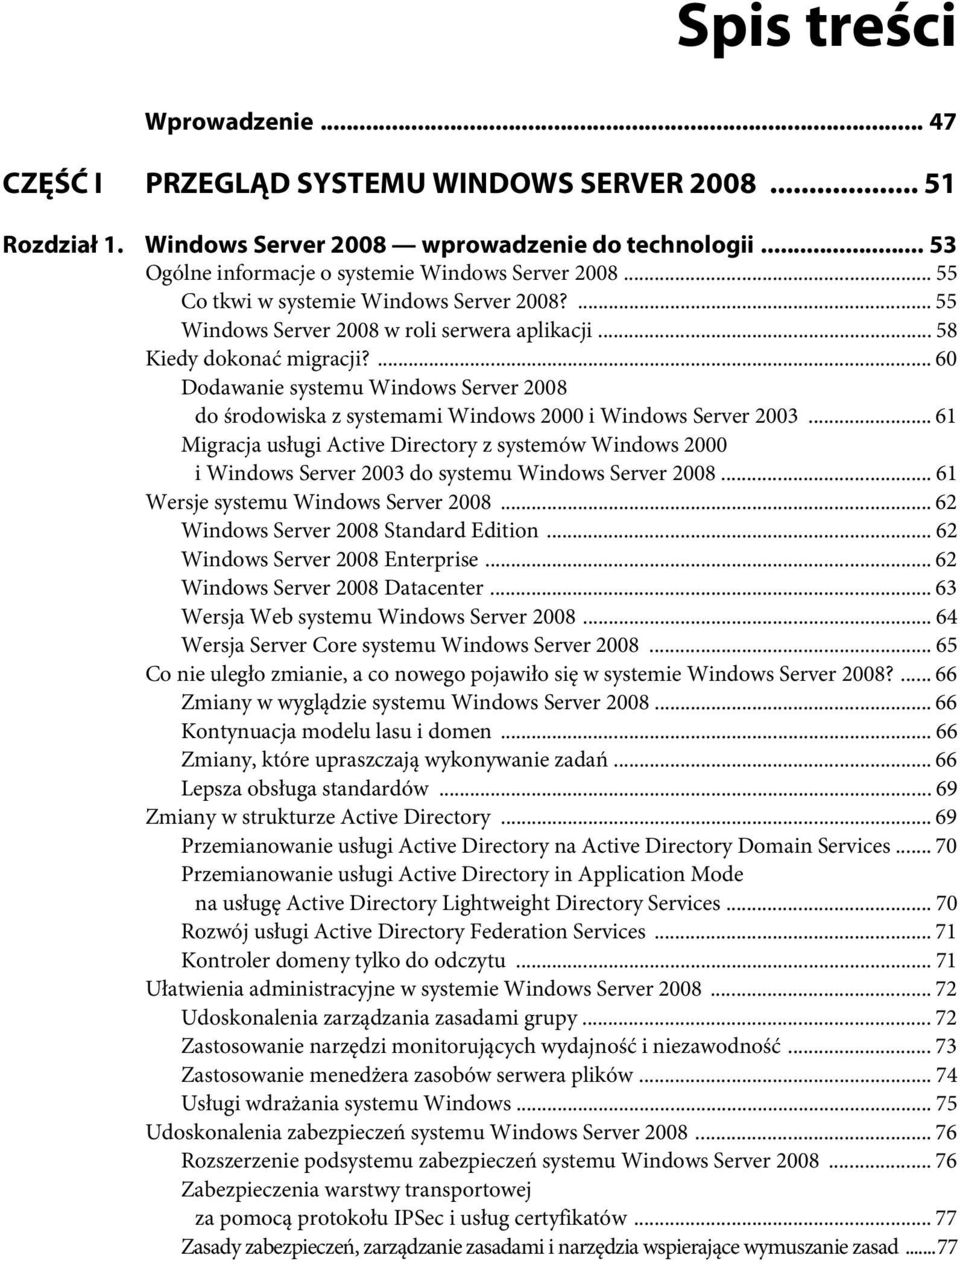 ... 60 Dodawanie systemu Windows Server 2008 do środowiska z systemami Windows 2000 i Windows Server 2003.